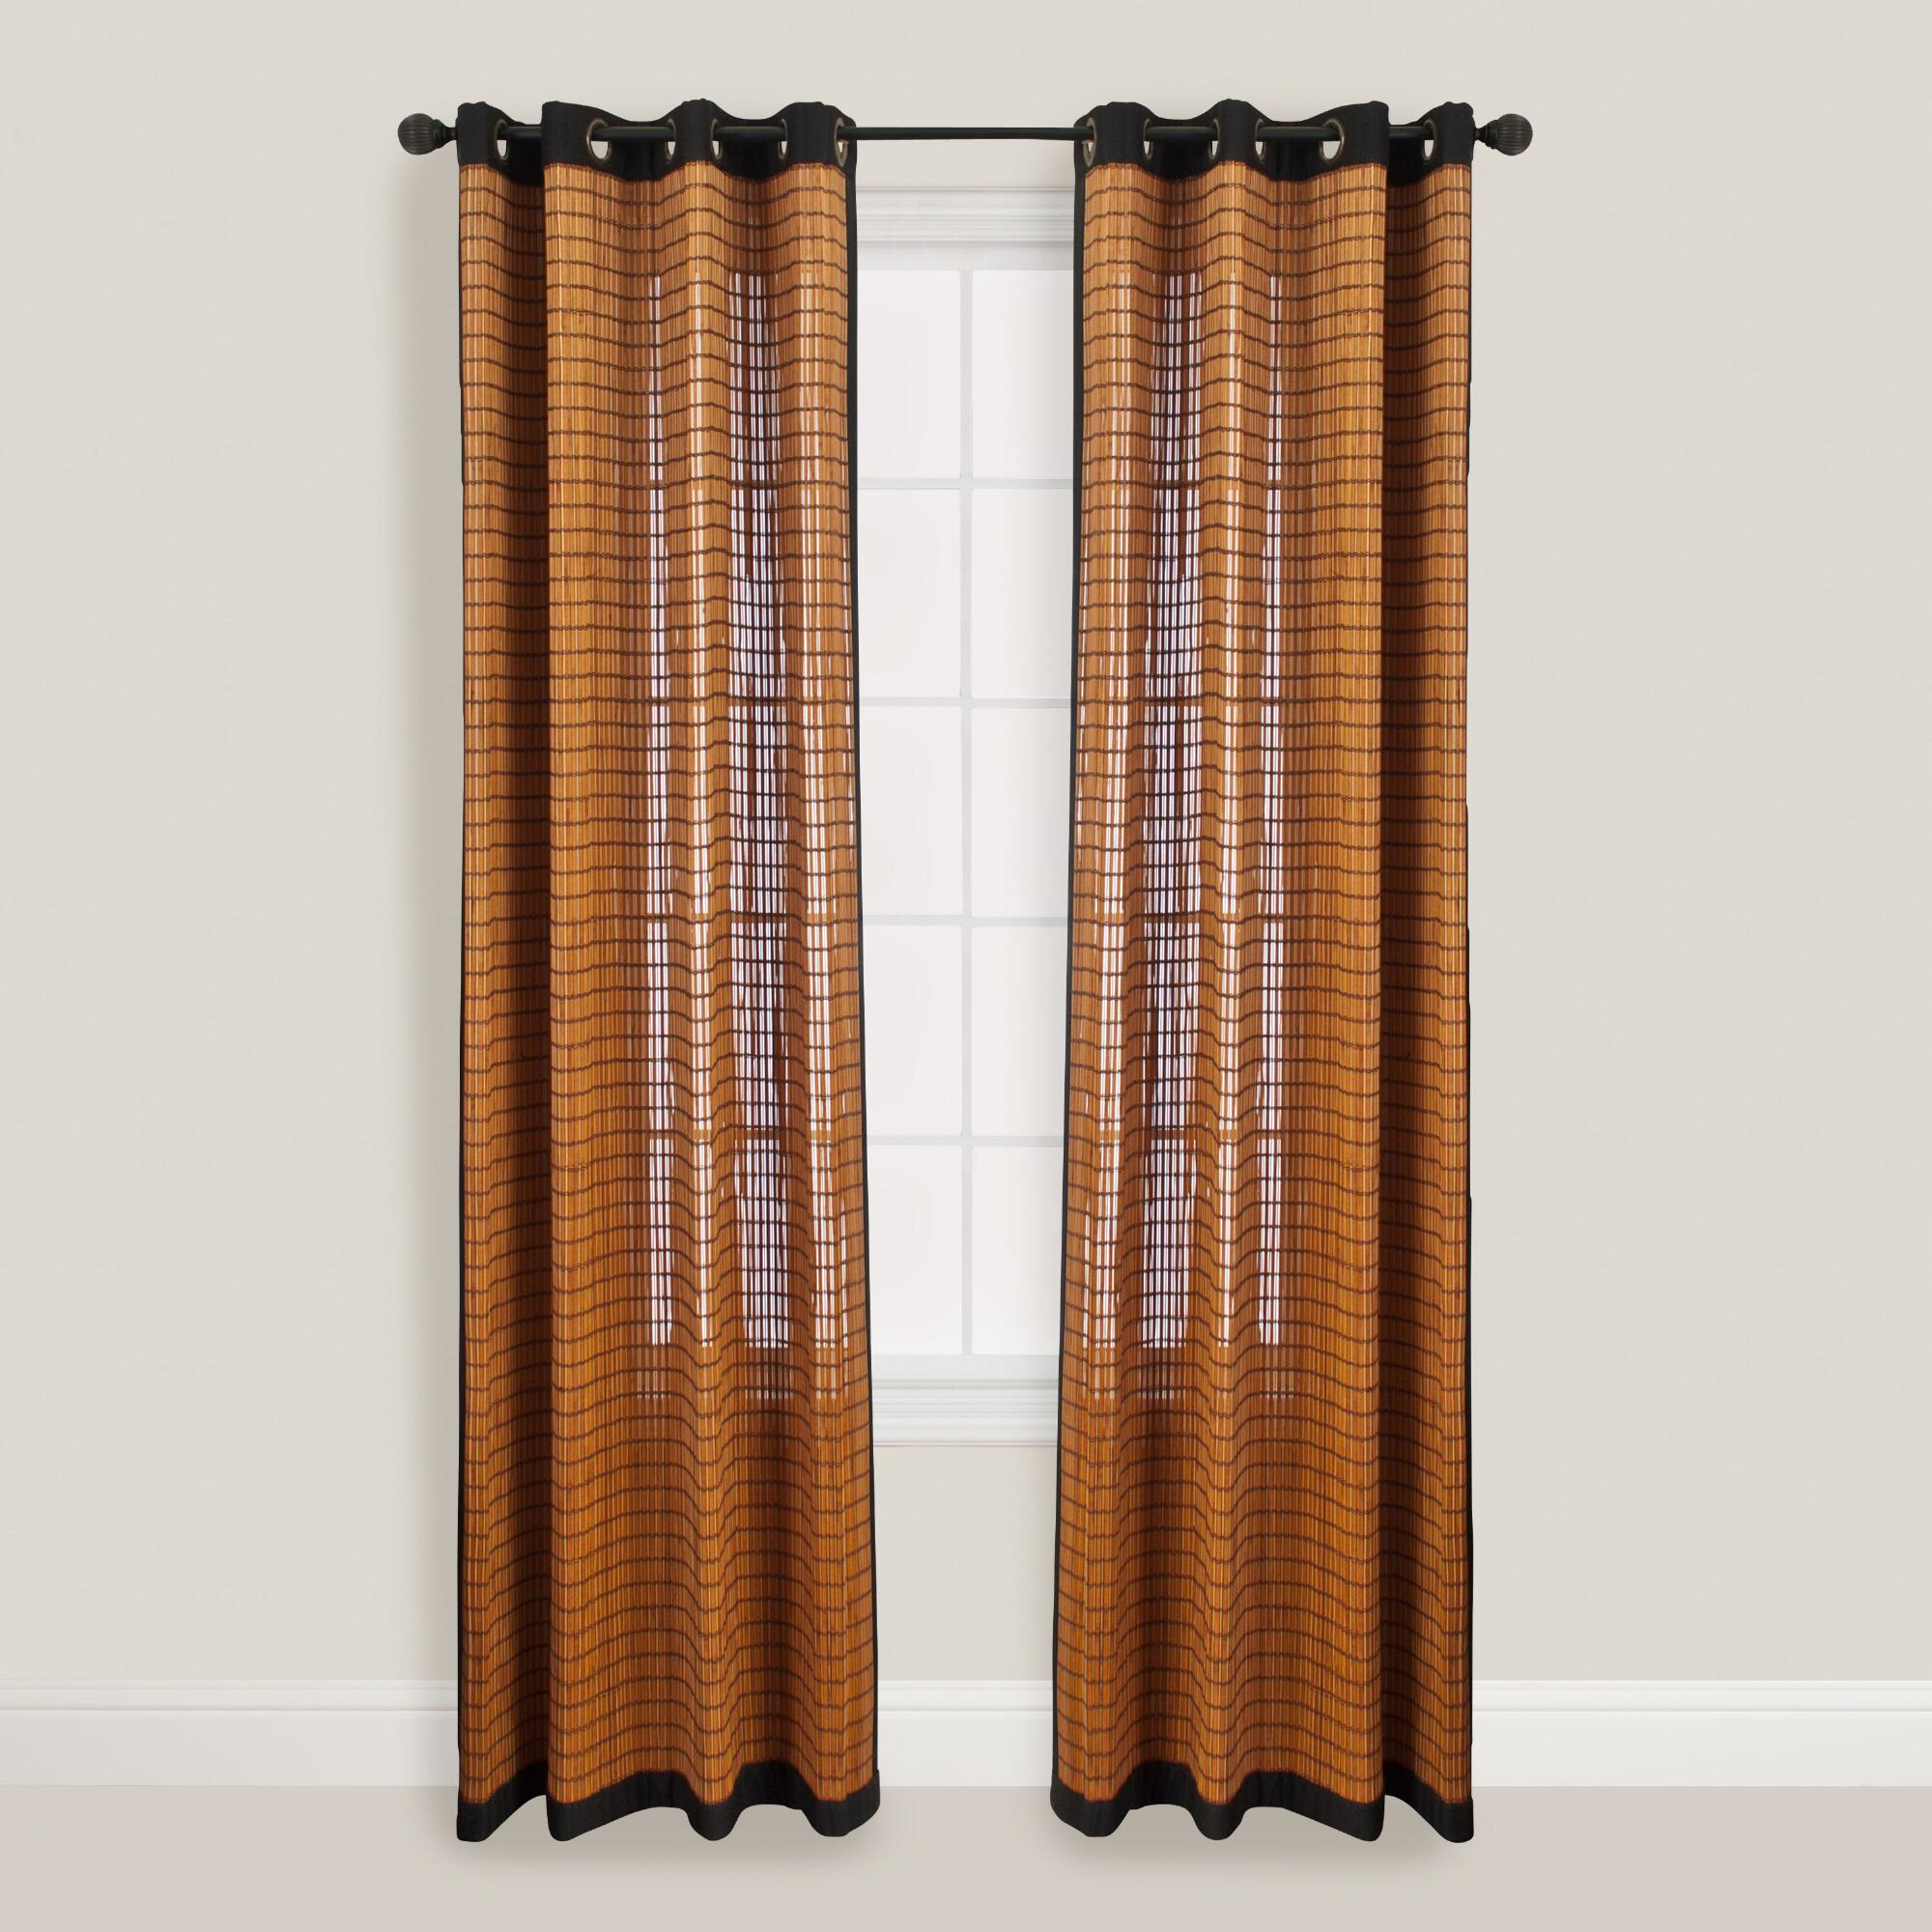 Bamboo Kitchen Curtains: Bark Bamboo Curtains With Grommets